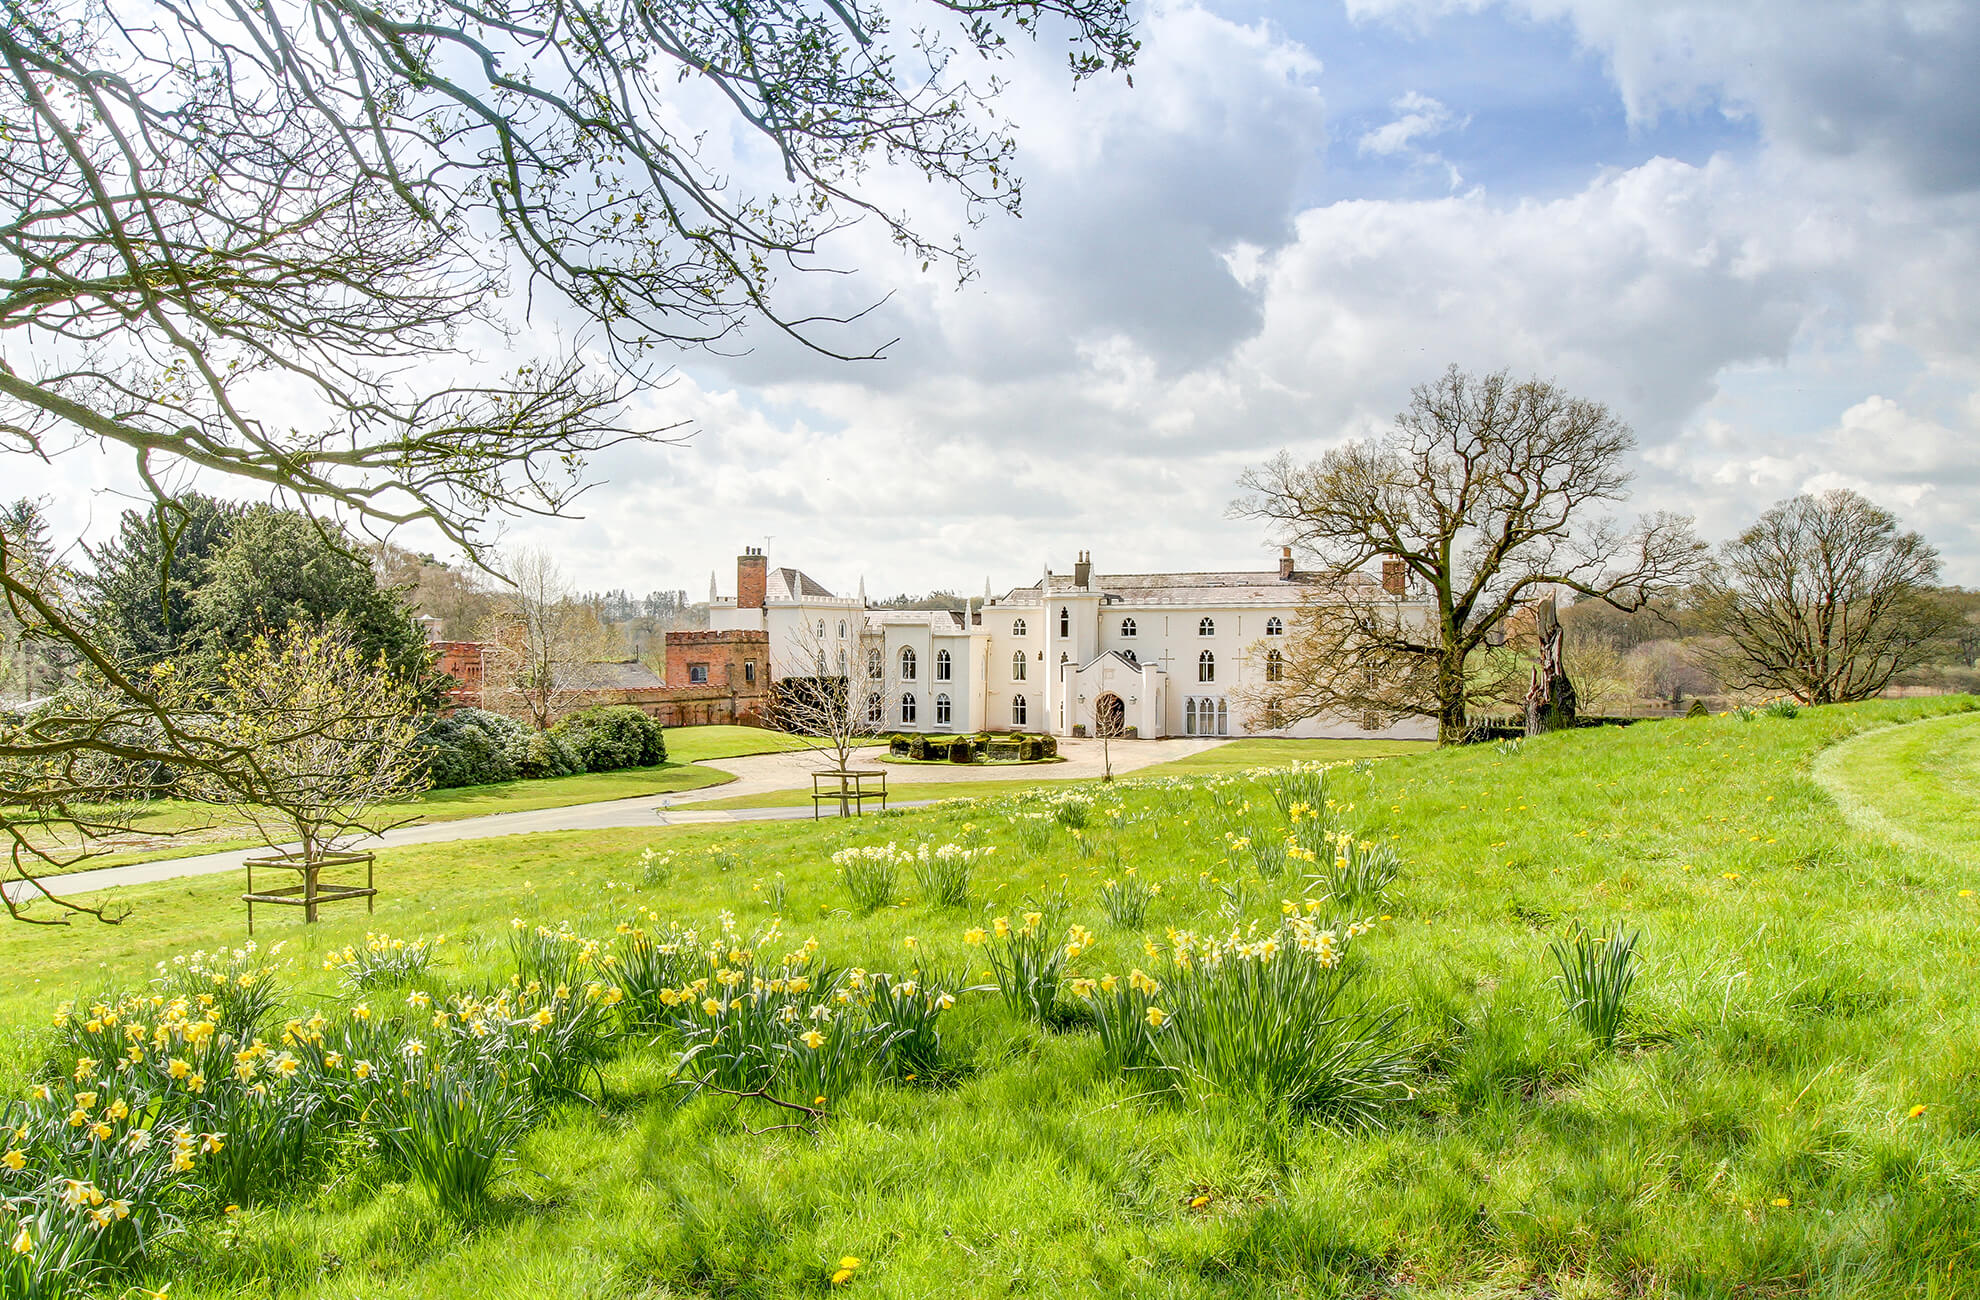 Combermere Abbey in Cheshire is the perfect setting for a spring wedding with daffodils adorning the driveway